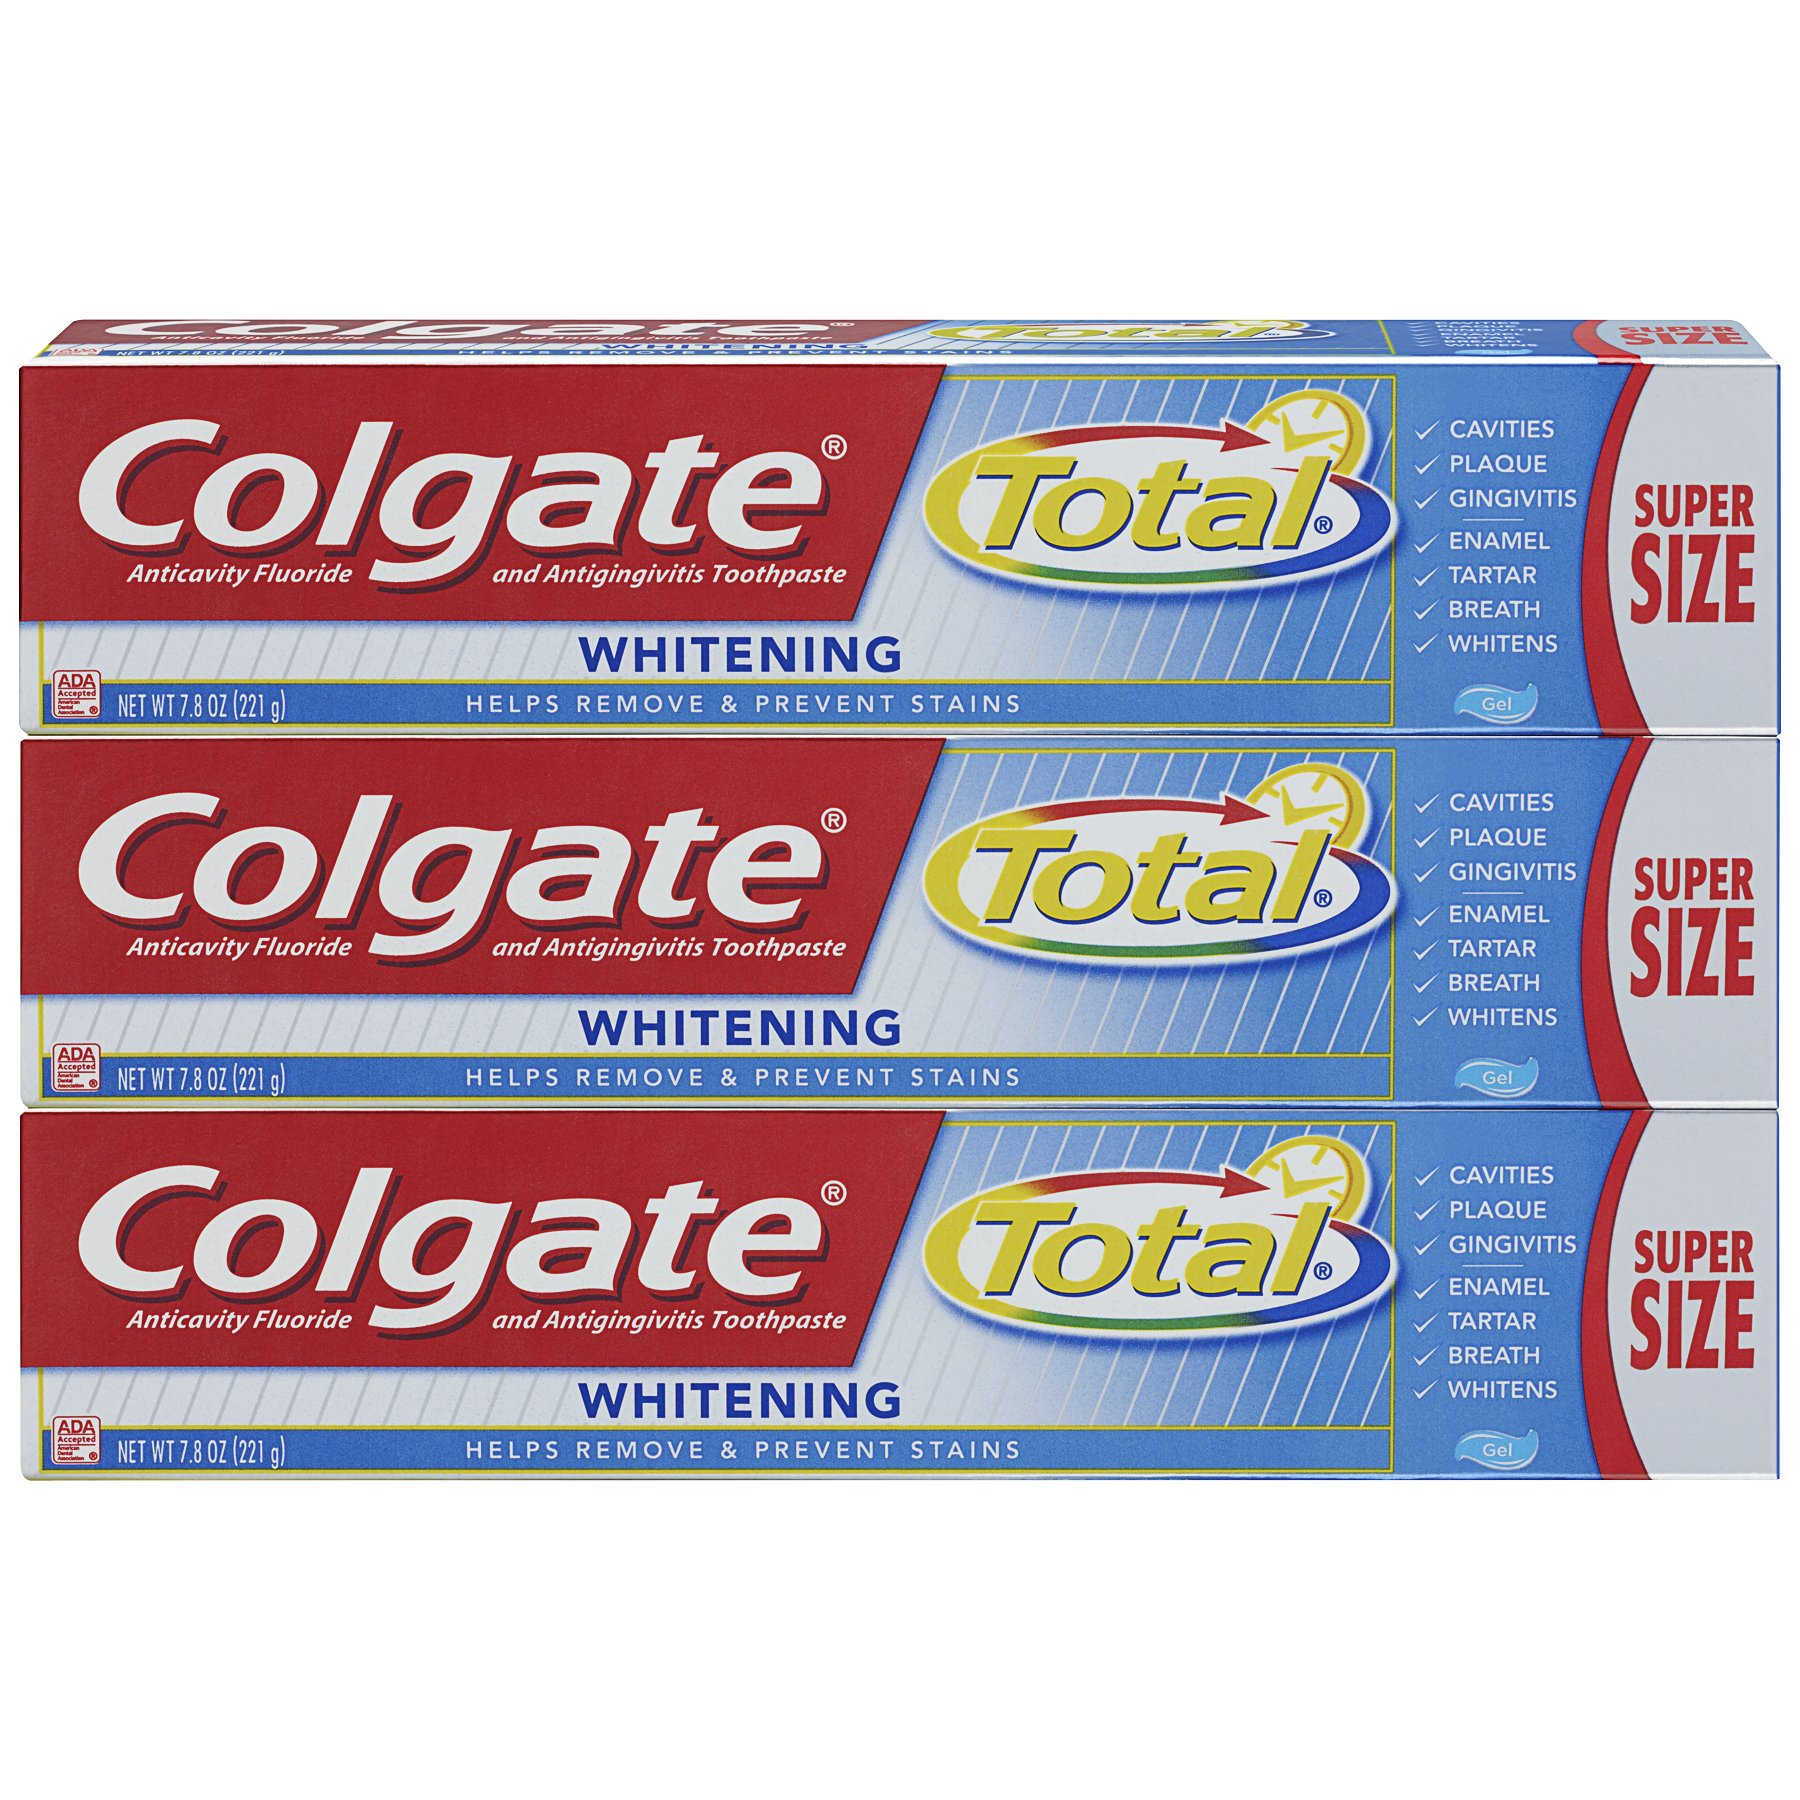 Colgate Total Whitening Toothpaste, Gel - 7.8 ounce (3 Pack)